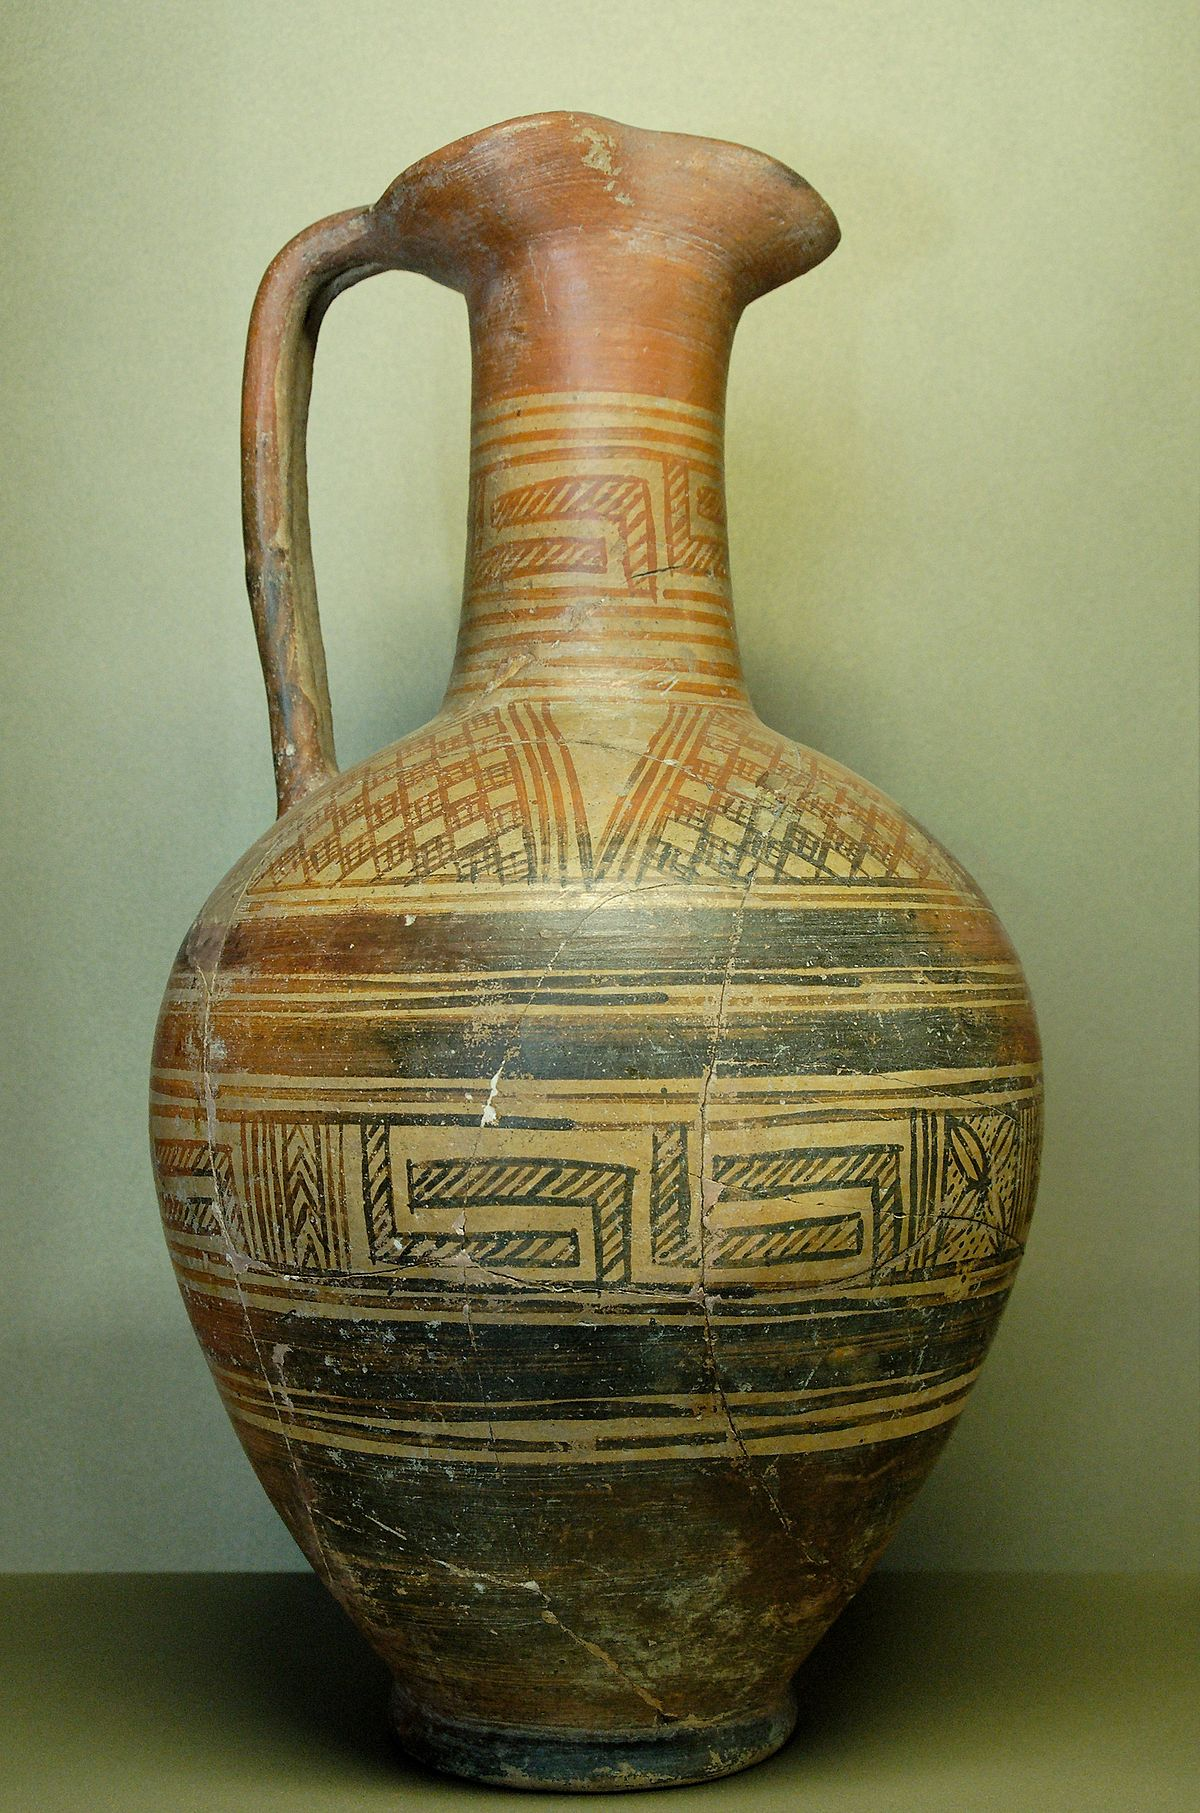 East greek vase painting wikipedia floridaeventfo Image collections